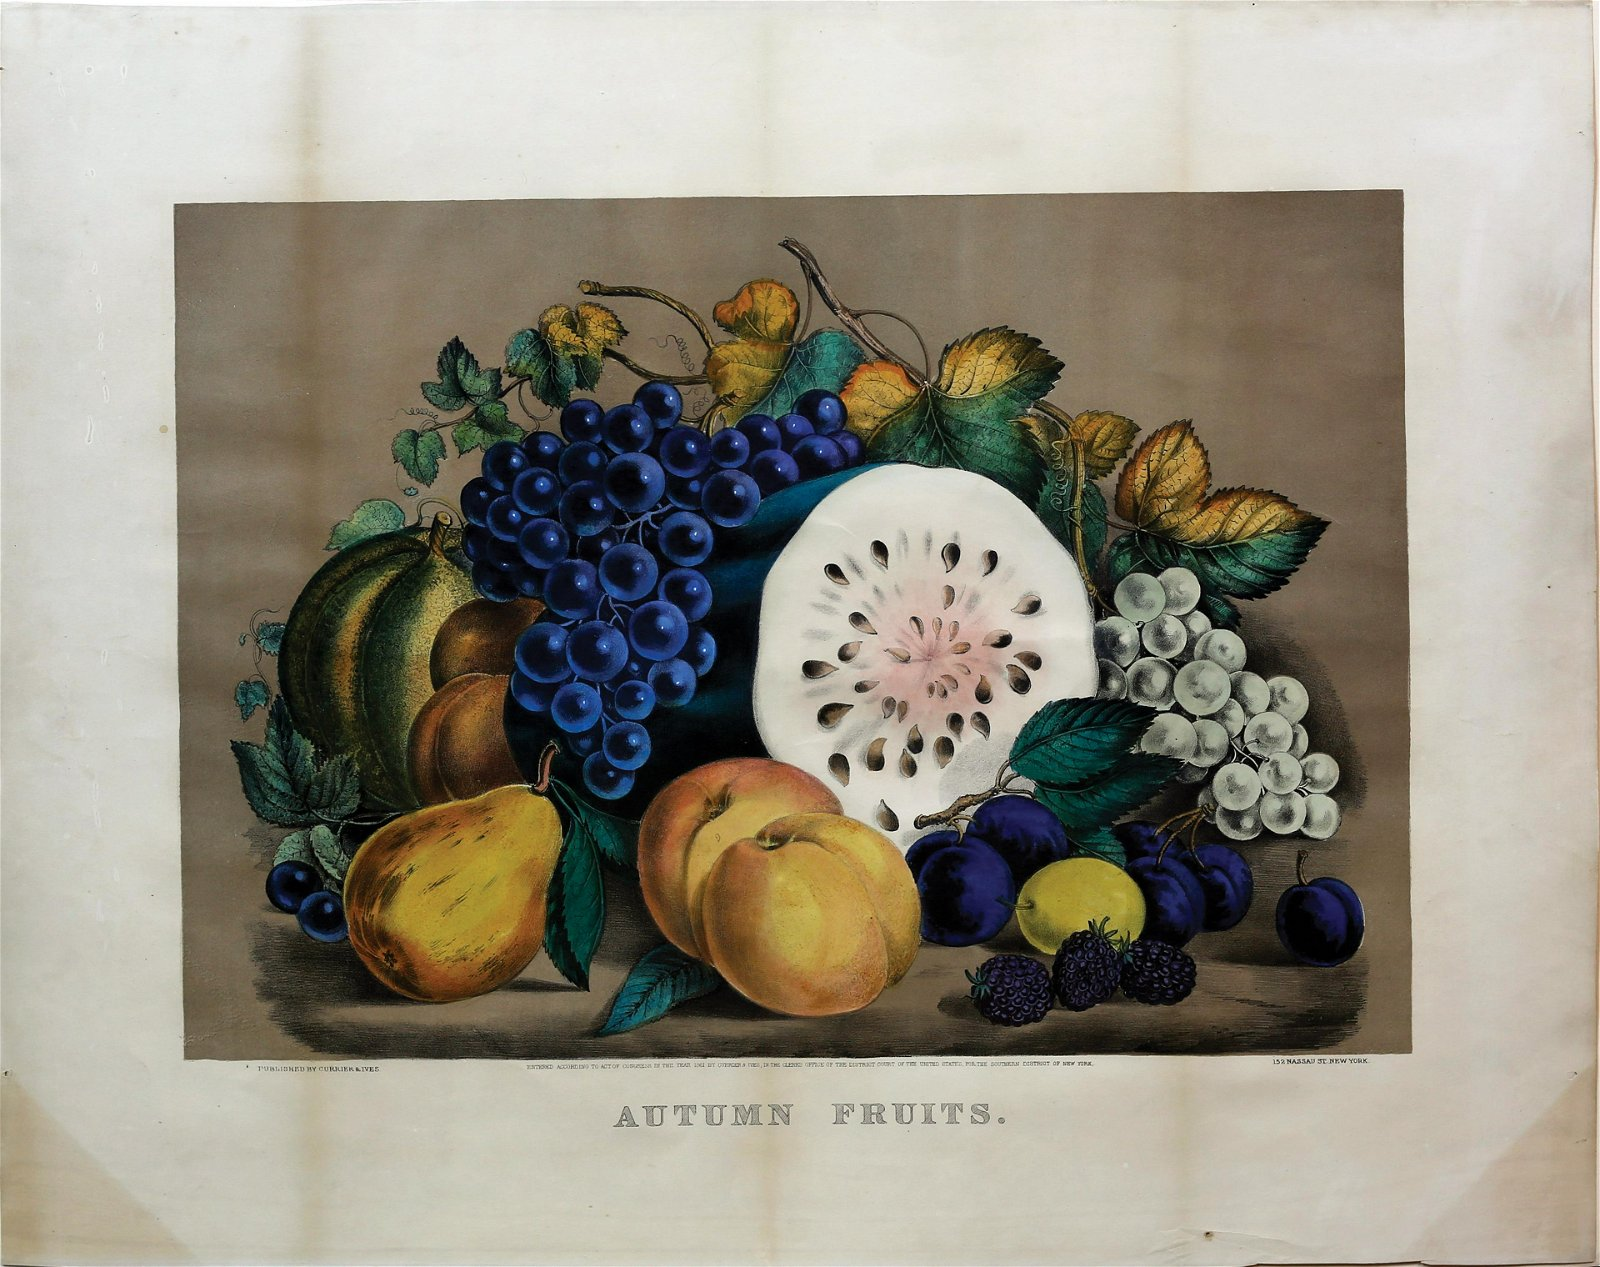 Currier & Ives Autumn Fruits